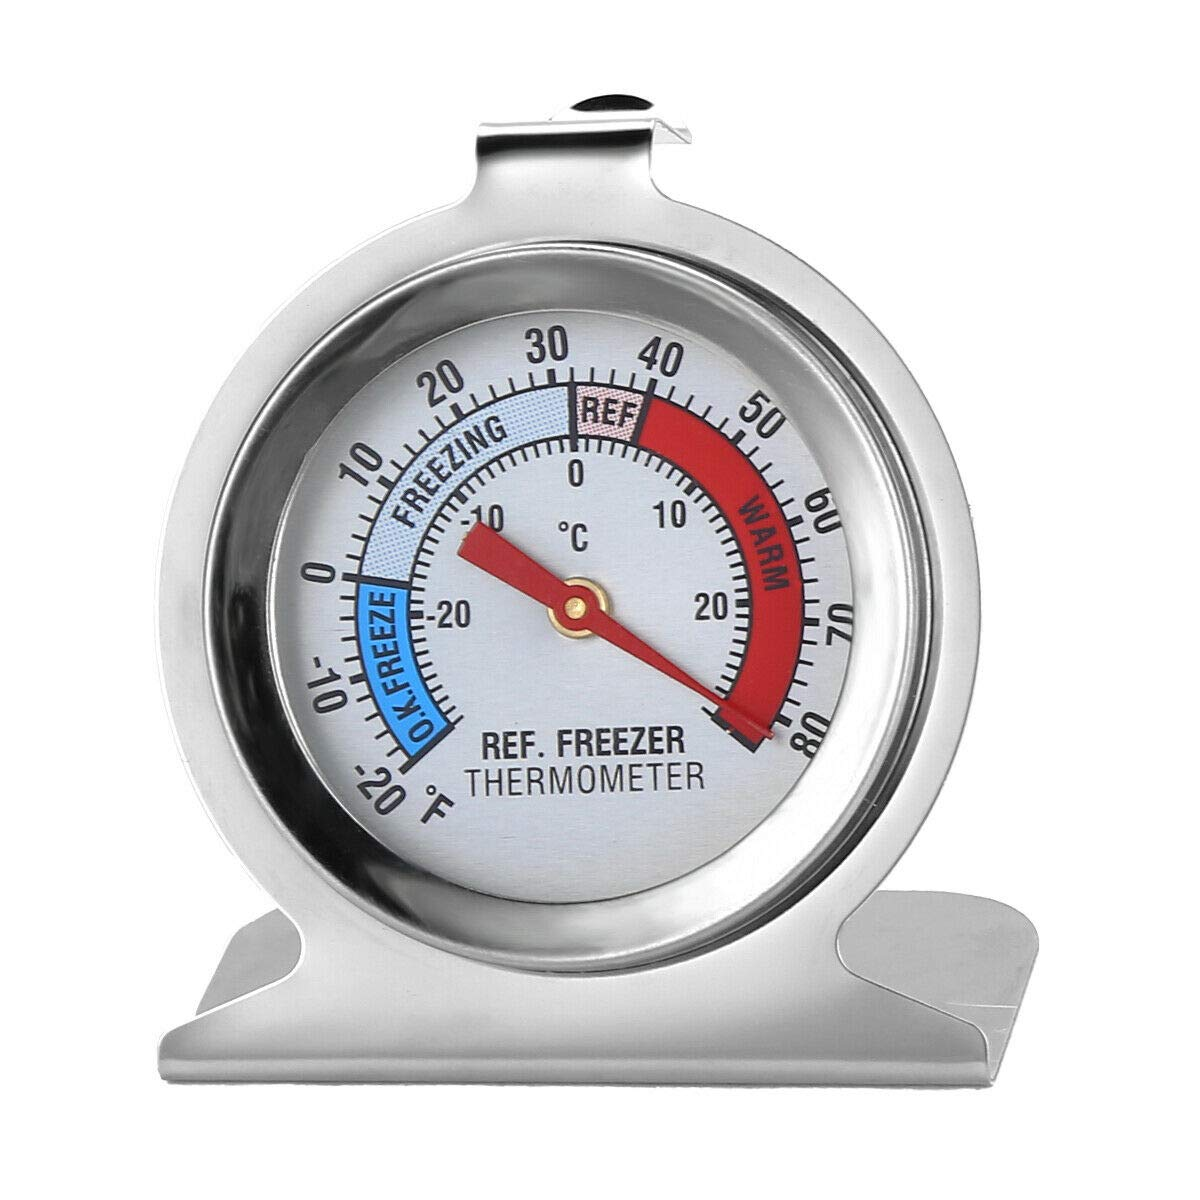 Refrigerator Freezer Thermometer Fridge Stainless Regular store Digital Type S Online limited product